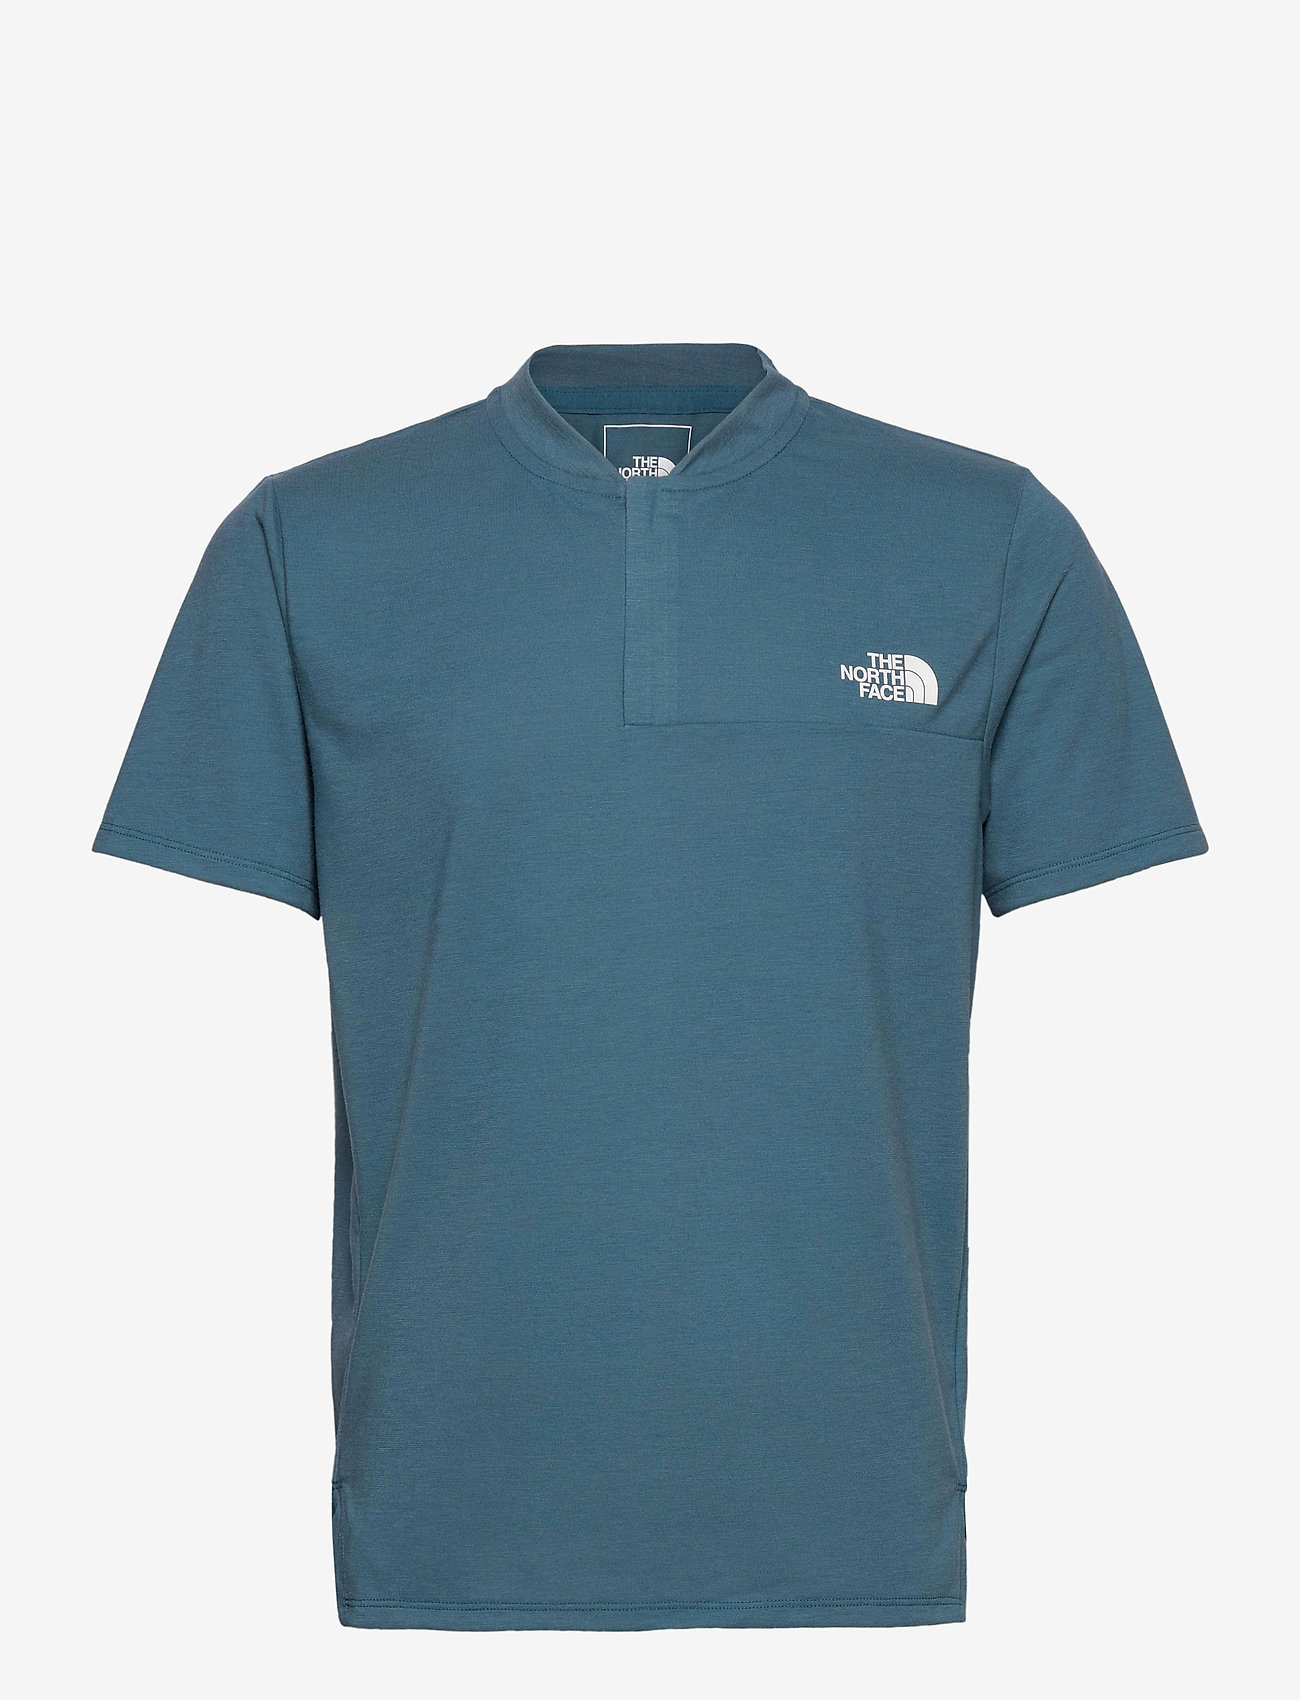 The North Face - M AT POLO - urheilutopit - mallard blue - 0